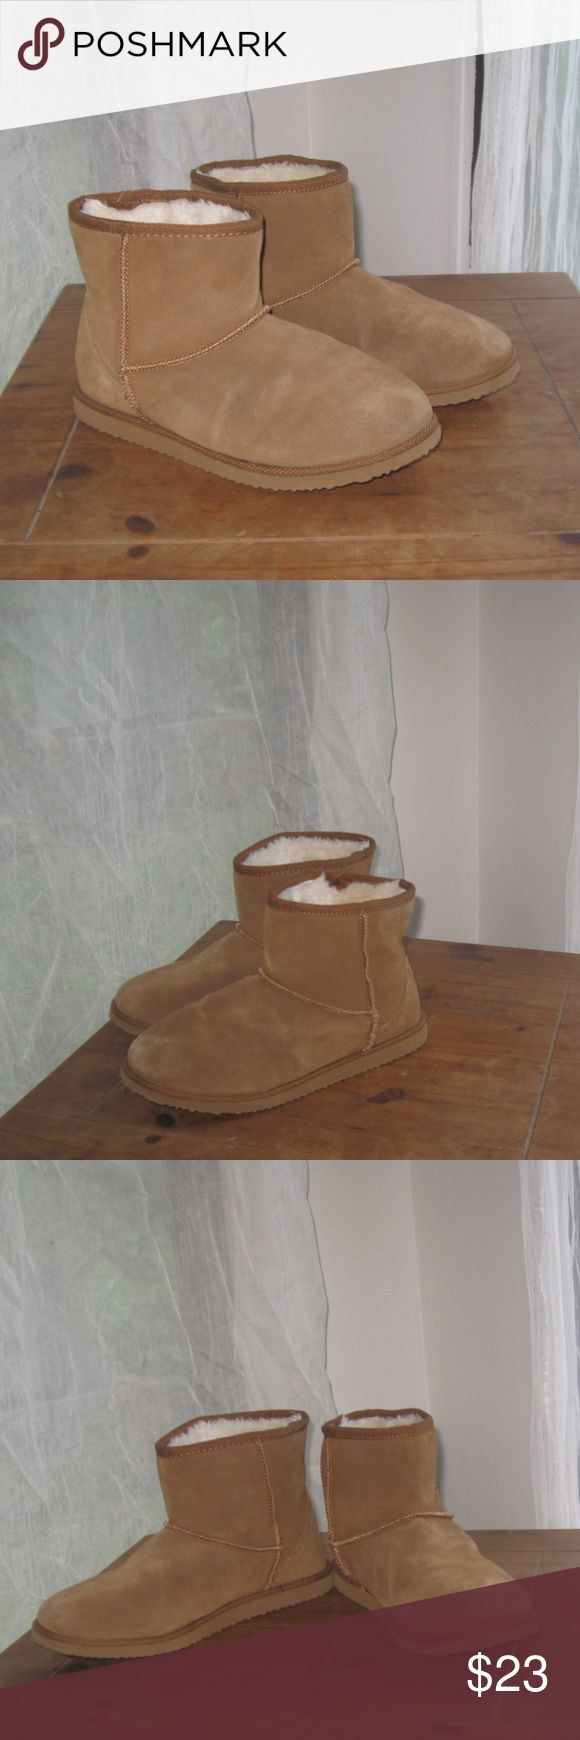 Old Navy 9 USA Beige Sherpa Low Ankle Boot EUC Old Navy size 9 USA ankle boot excellent pre-owned. Old Navy Shoes Ankle Boots & Booties